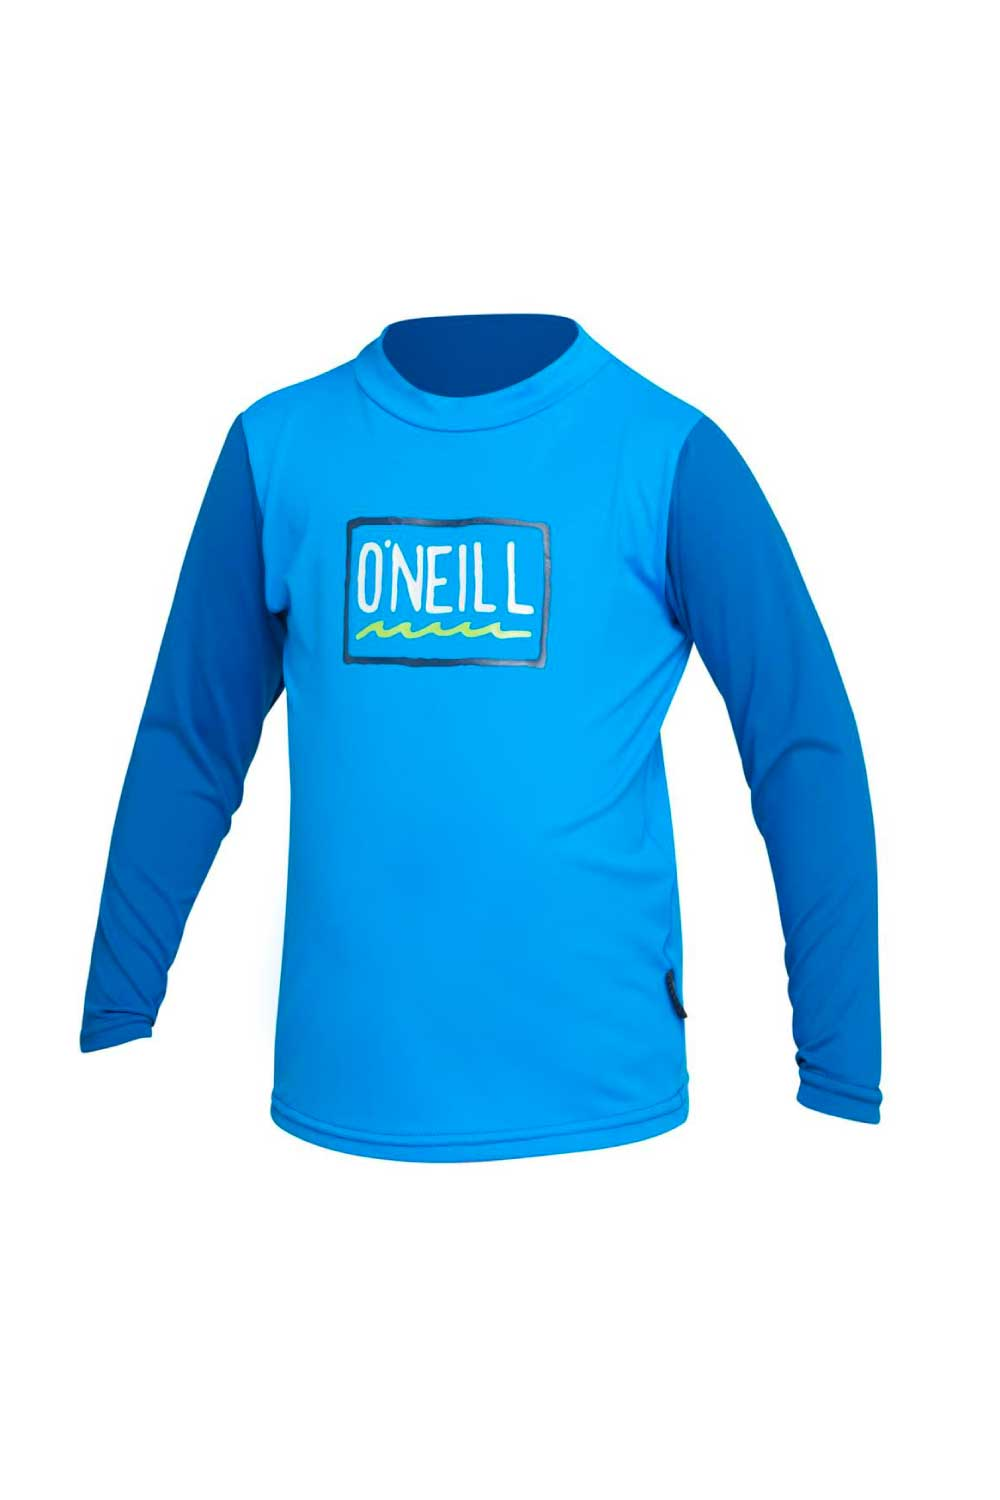 O'Neill Toddler Skins Long Sleeve Rash Vest - Brite Blue